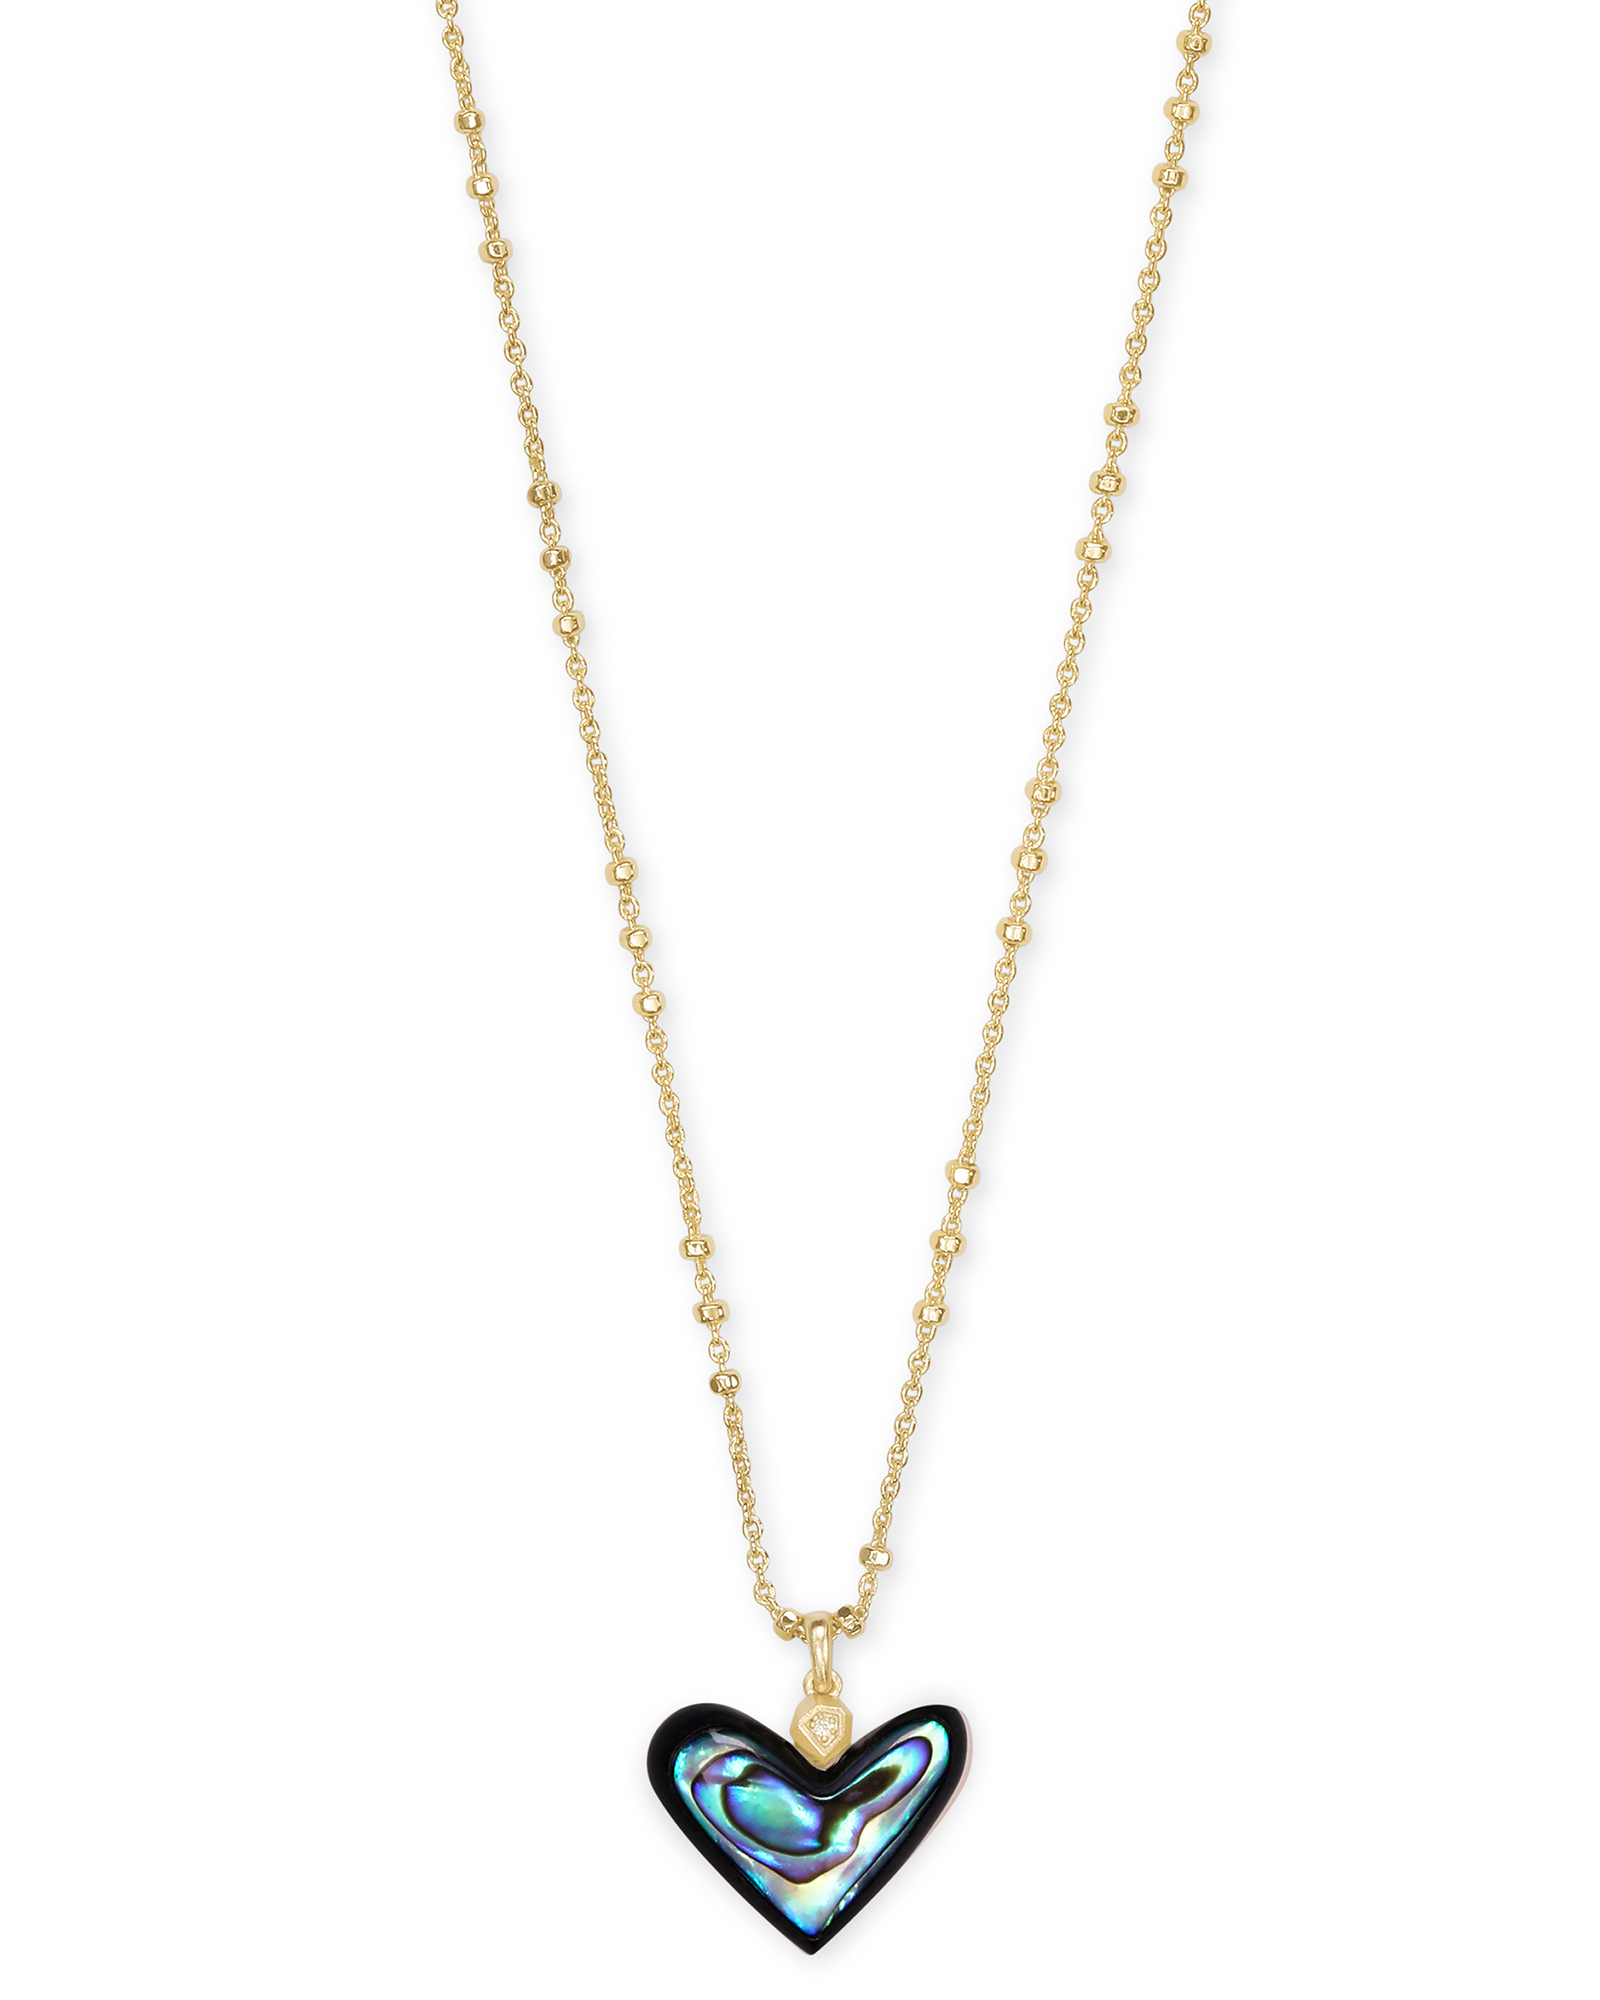 Poppy Heart Gold Pendant Necklace in Abalone